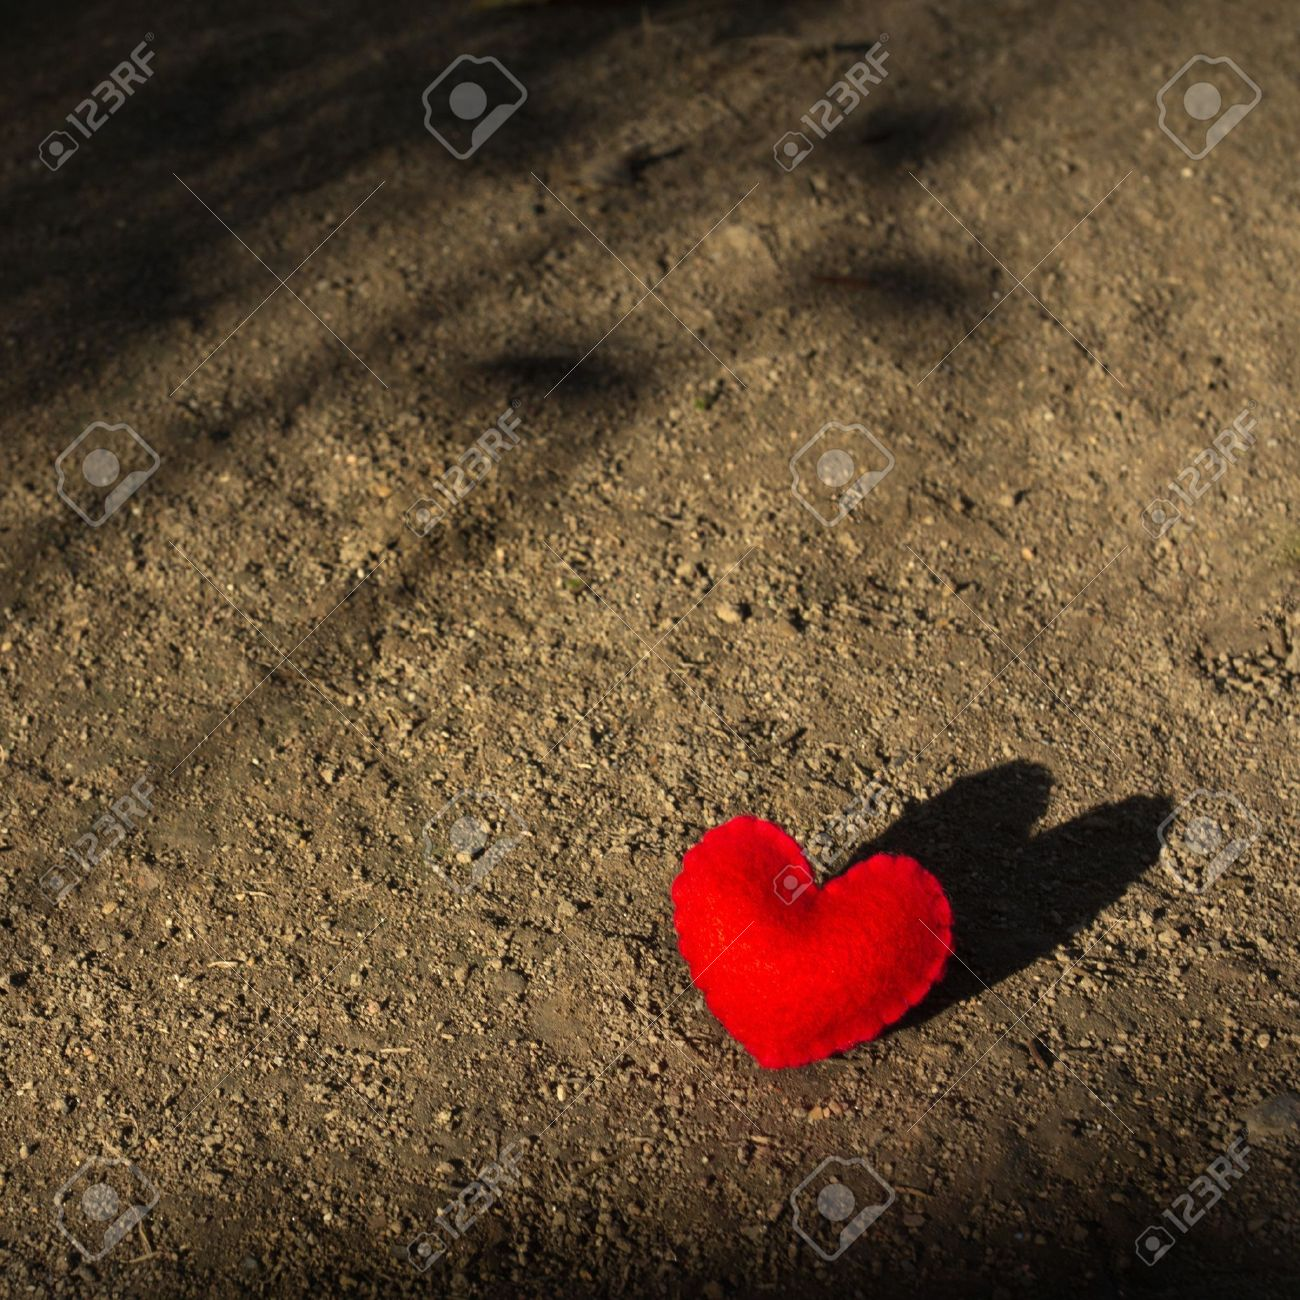 Red Heart Lying Alone On The Ground With Shadow Waiting For Love